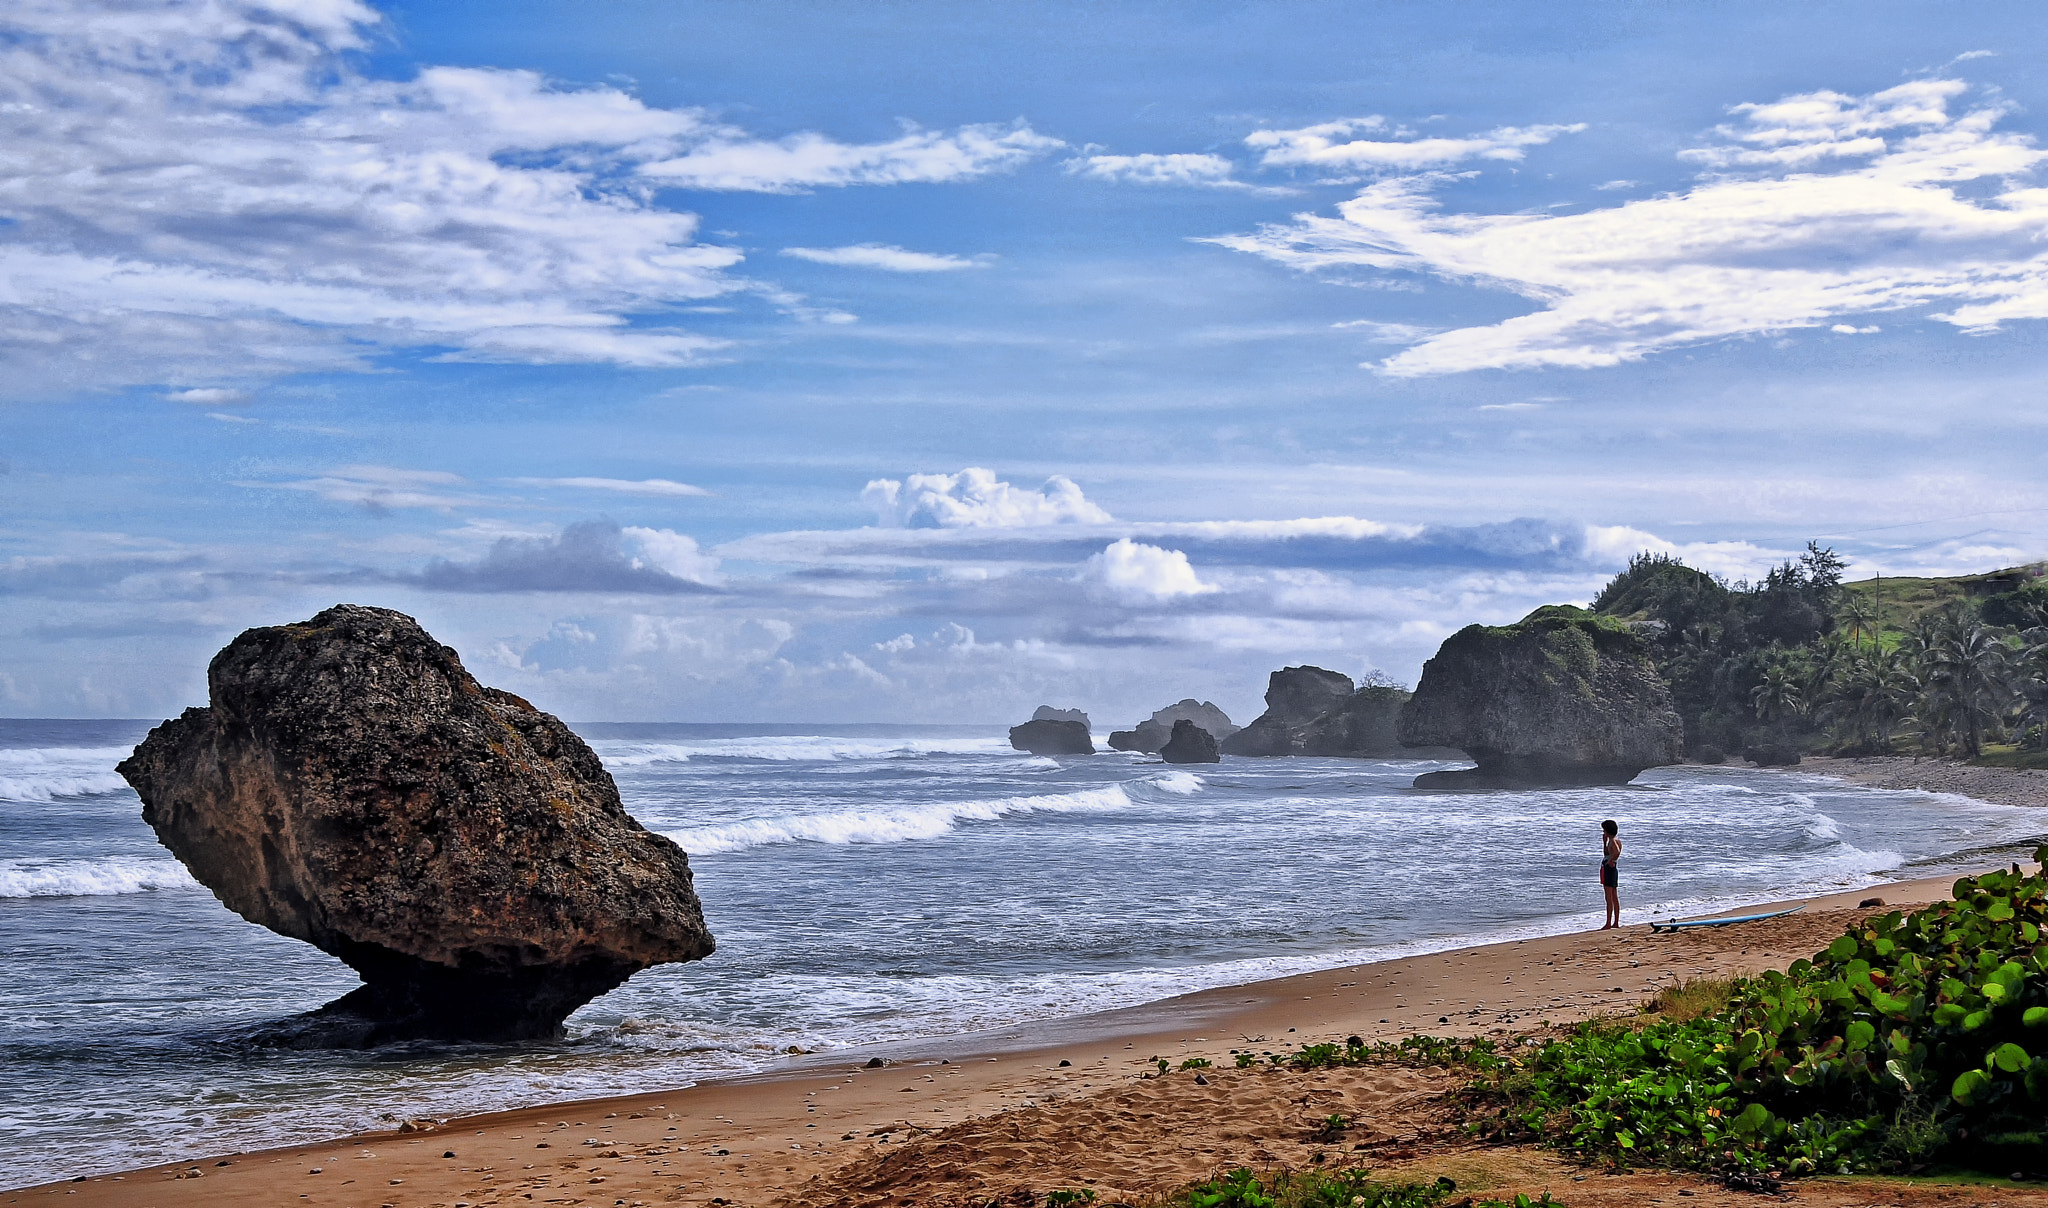 Photograph Alone at Bathsheba by Jeff Clow on 500px